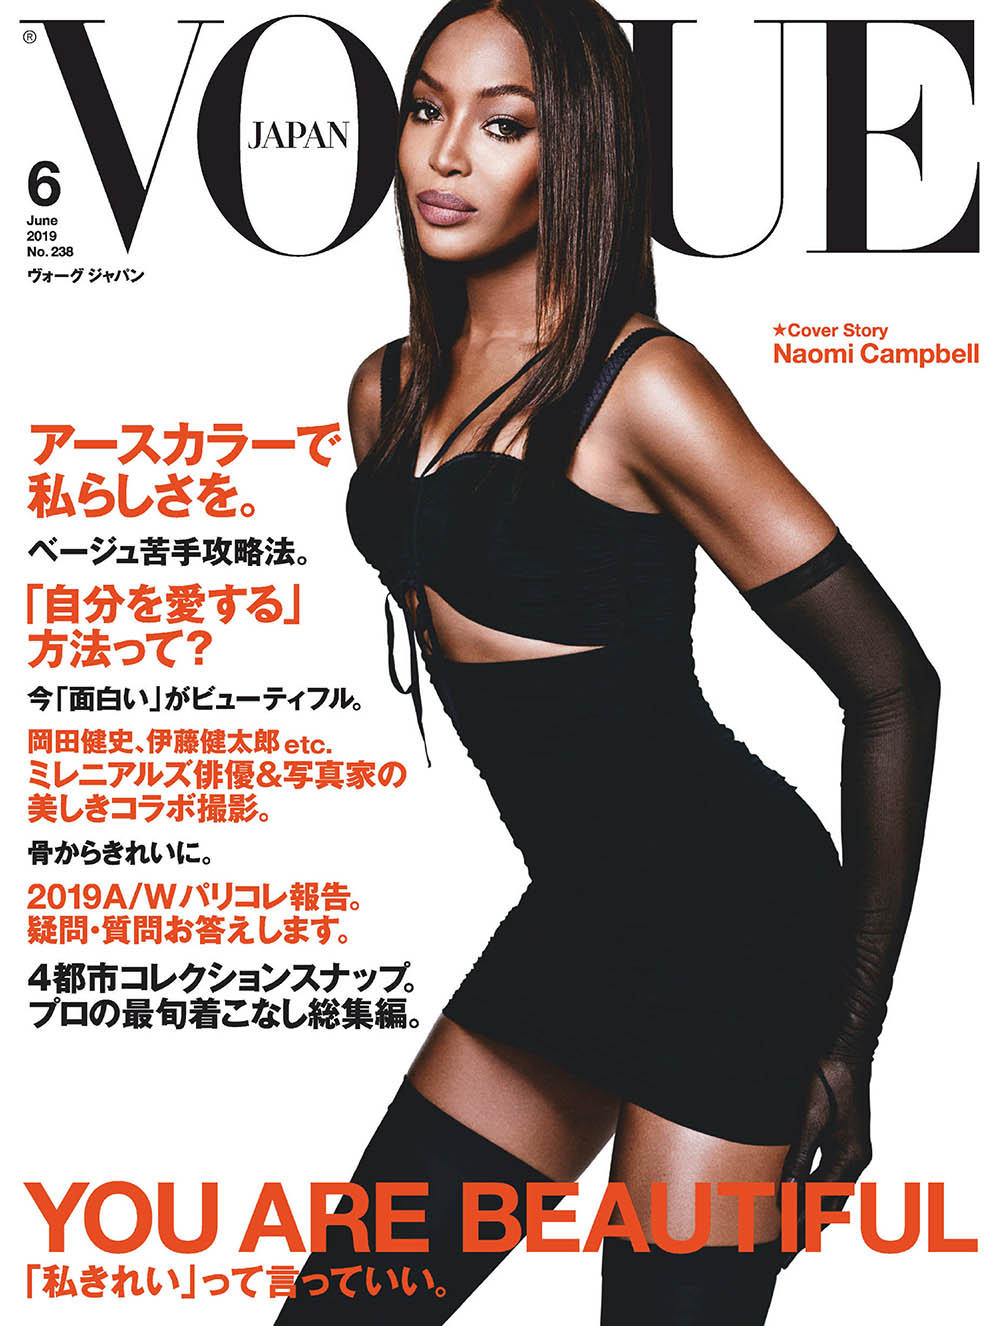 Naomi Campbell covers Vogue Japan June 2019 by Luigi & Iango